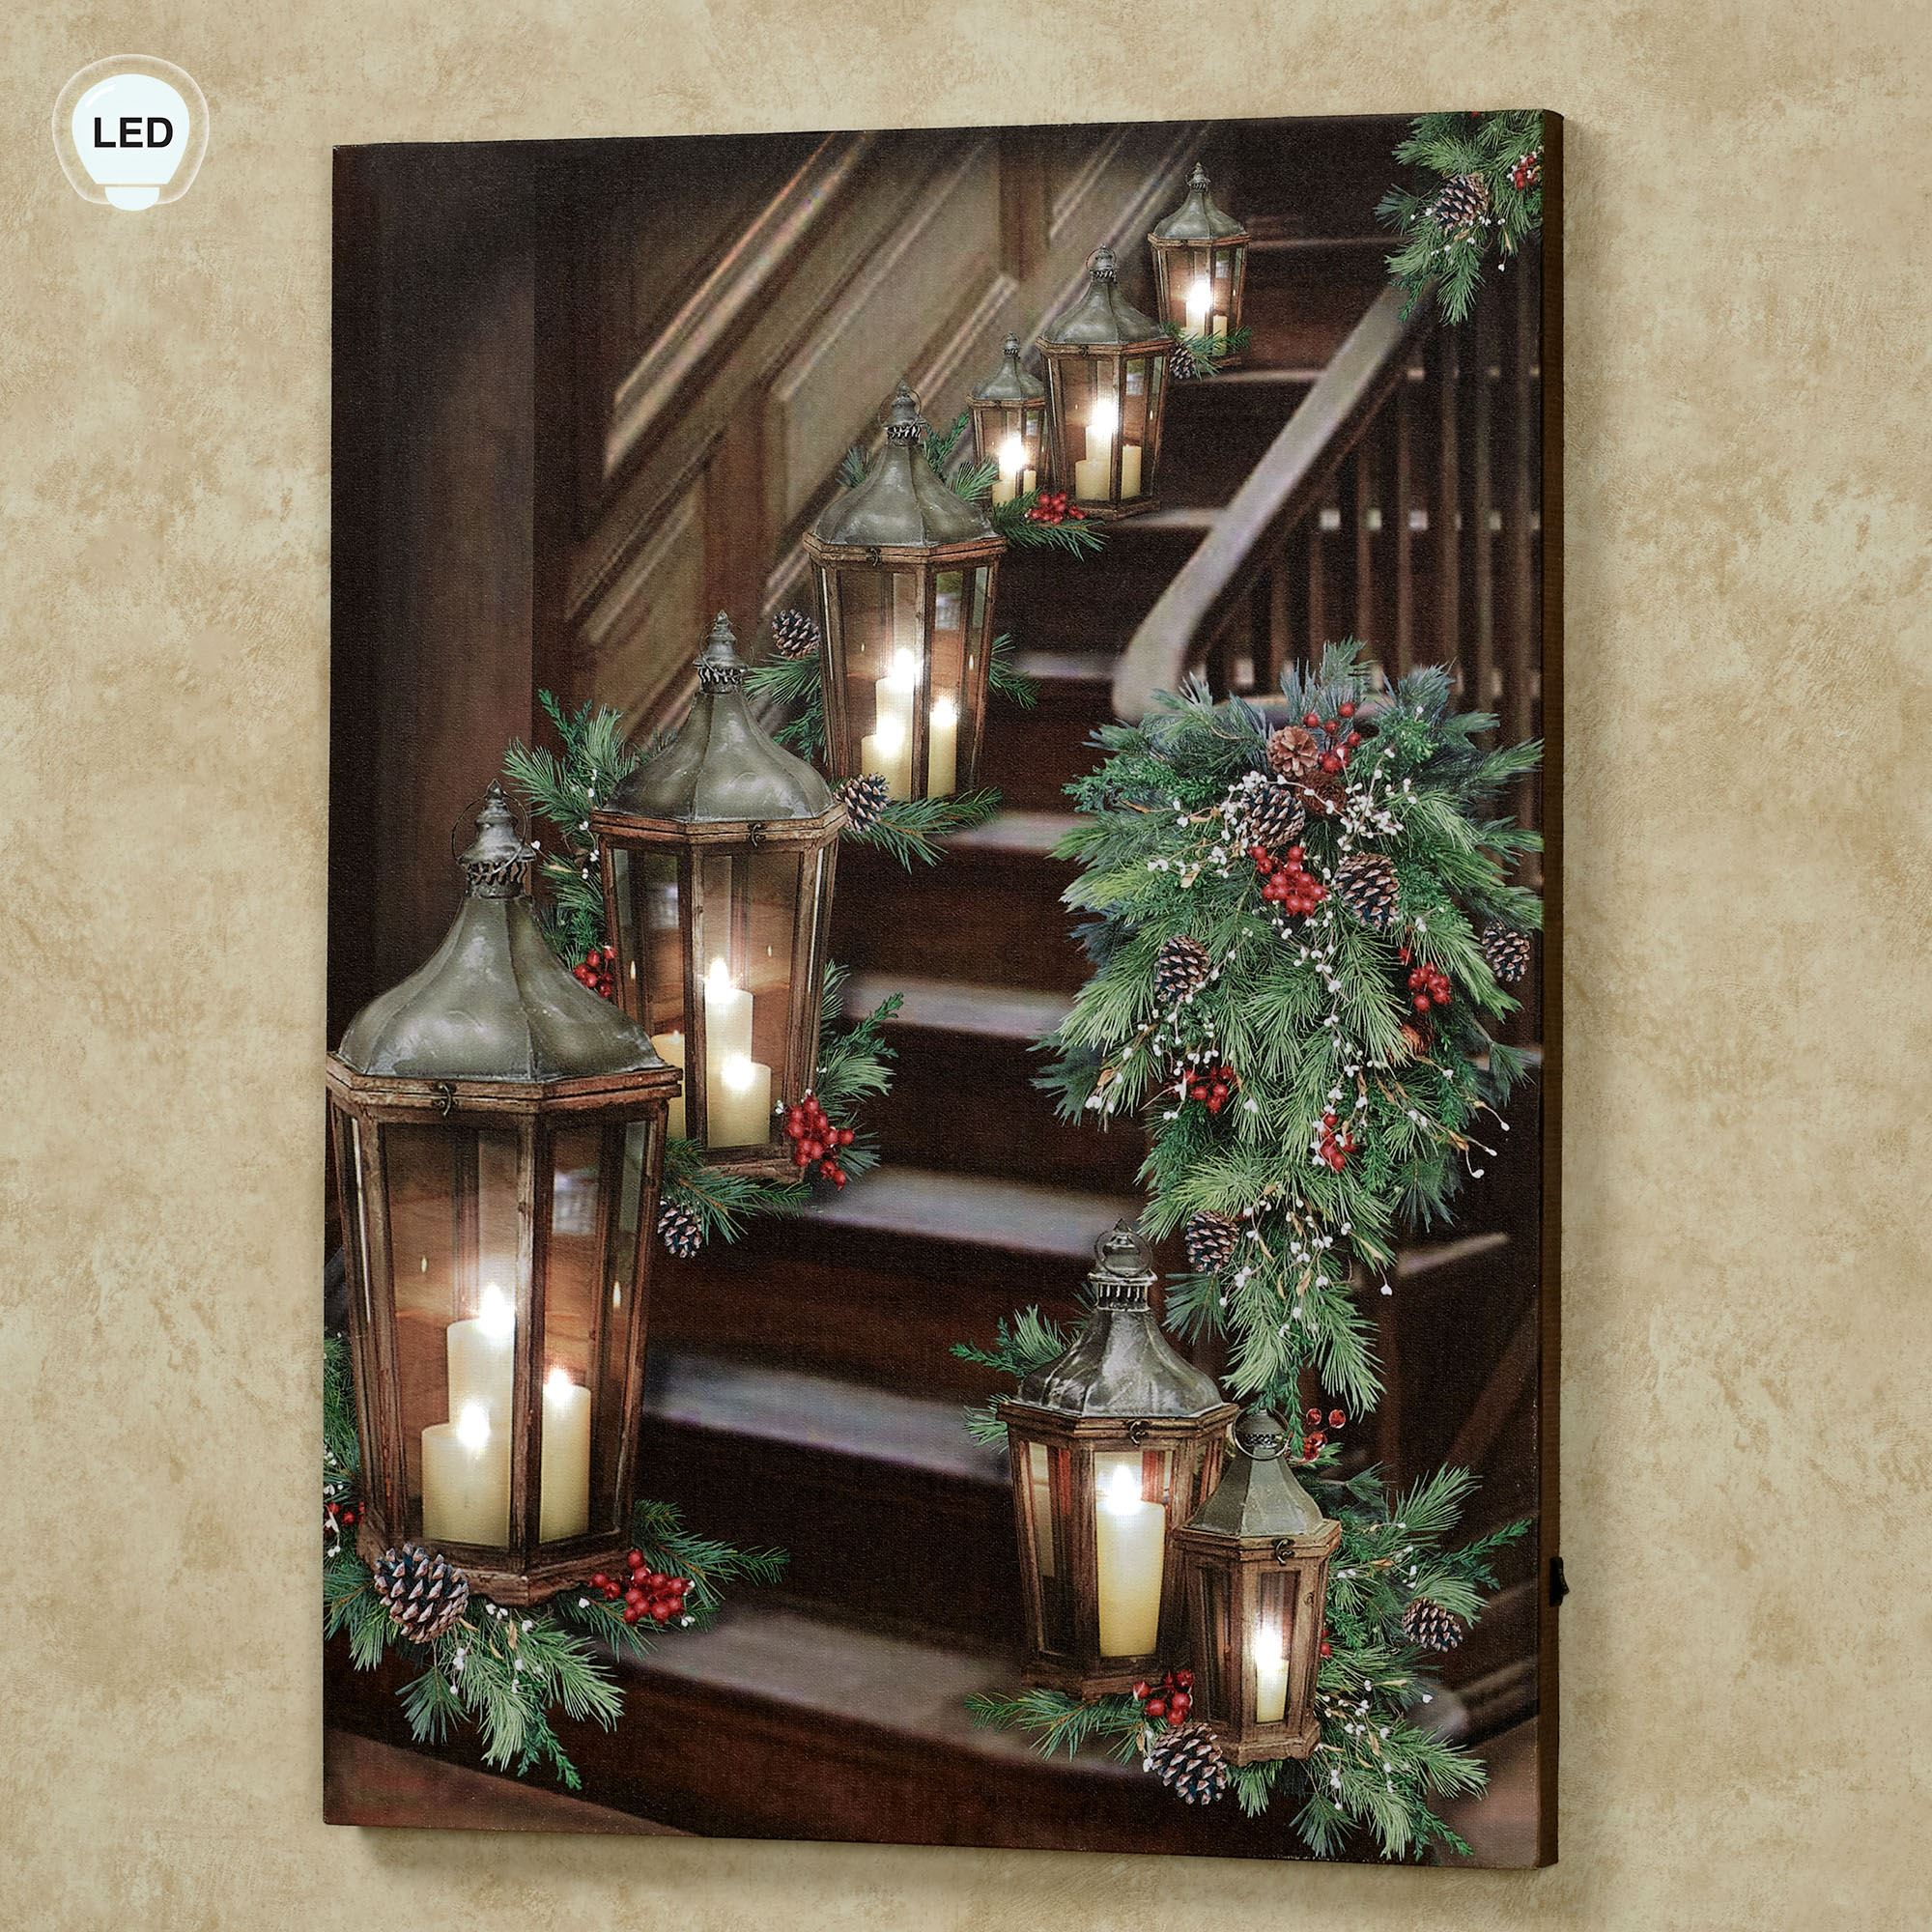 touch to zoom - Lighted Christmas Wall Decorations